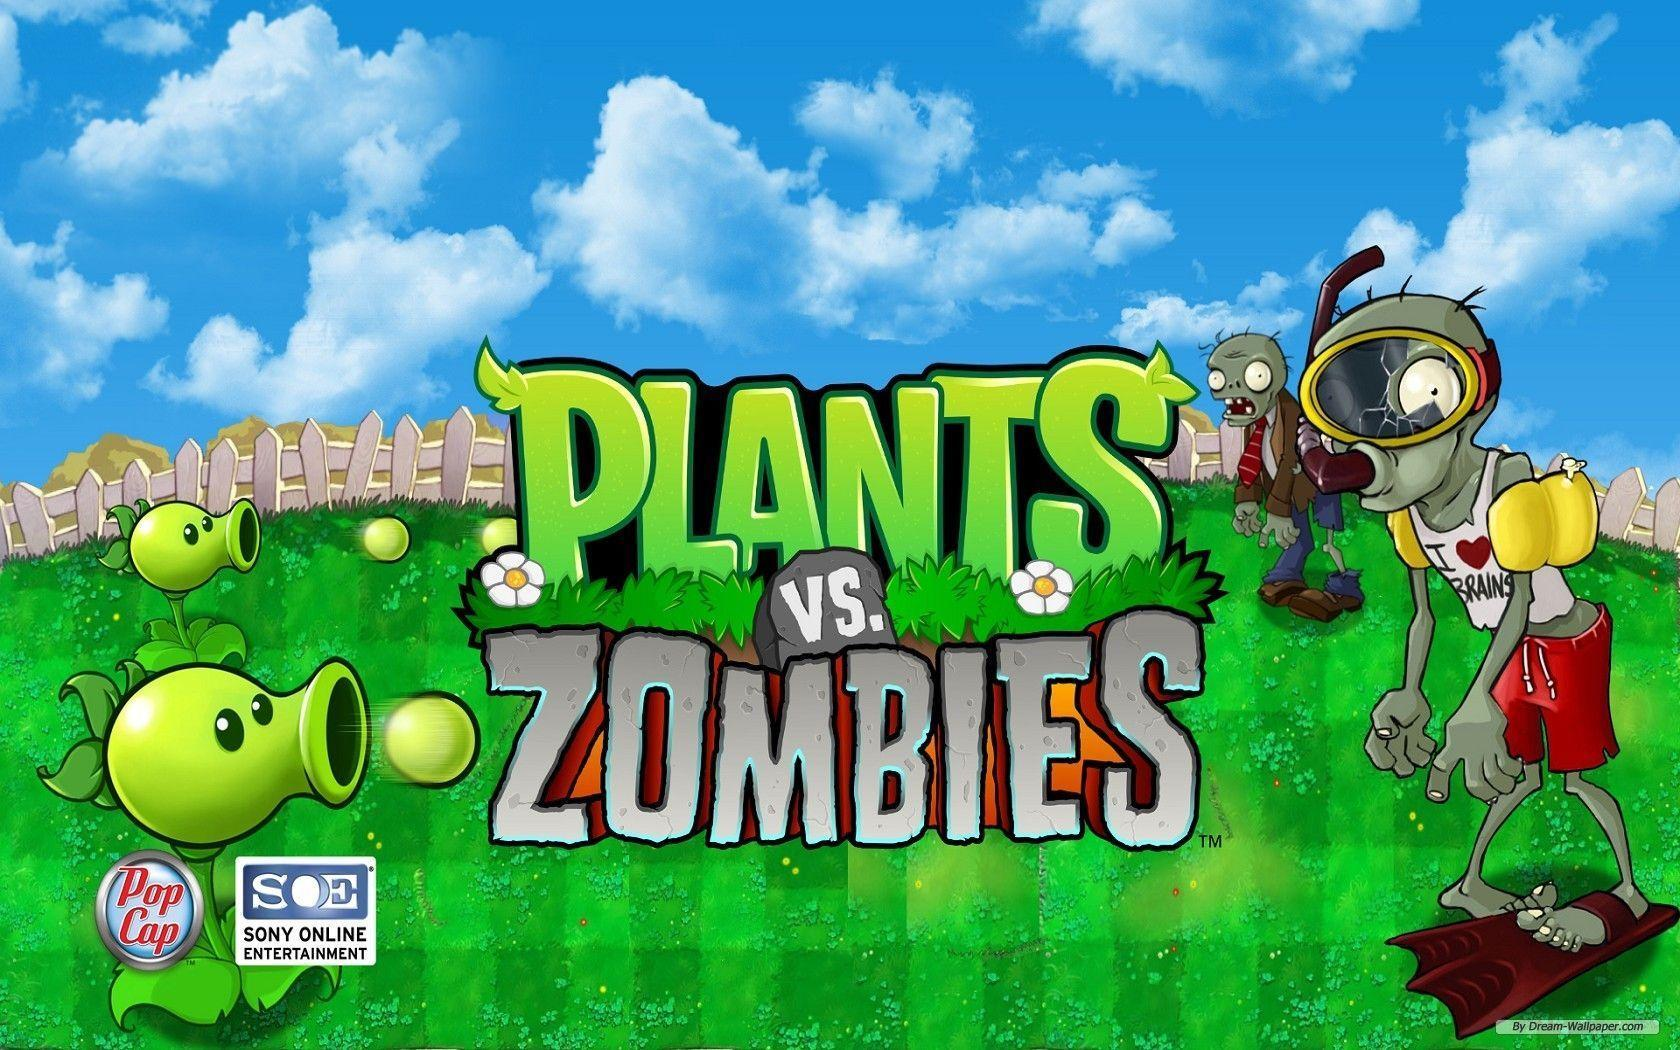 Plants vs zombies wallpapers wallpaper cave plants vs zombies wallpapers hd wallpapers inn download toneelgroepblik Image collections